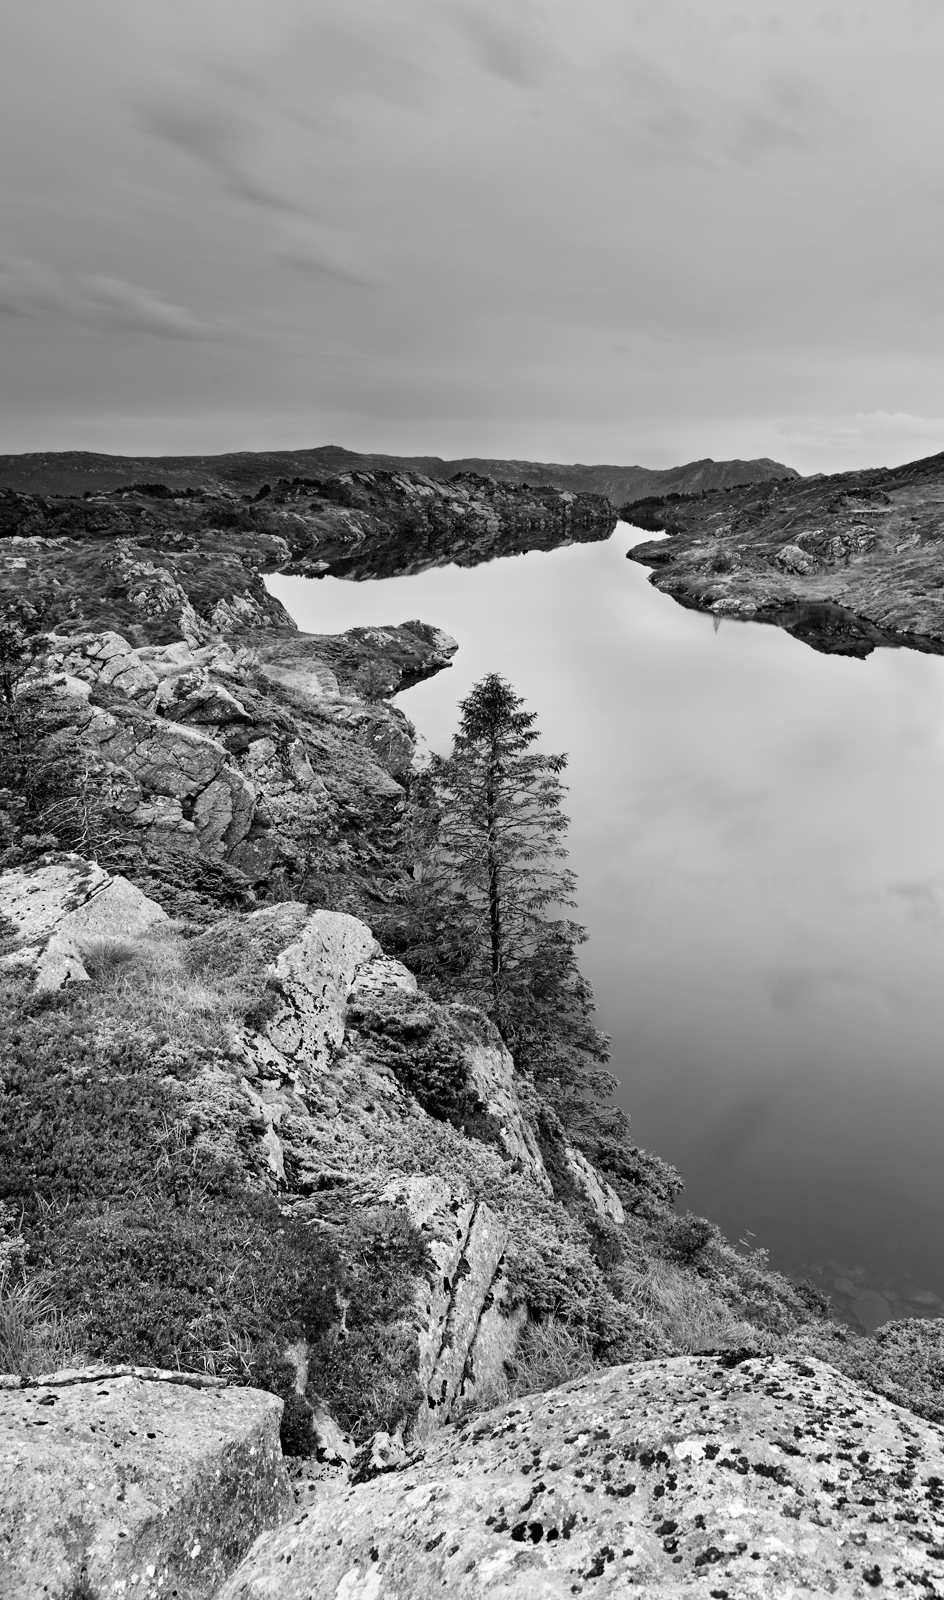 water_and_rocks_by_ff93-d43qkl6.jpg